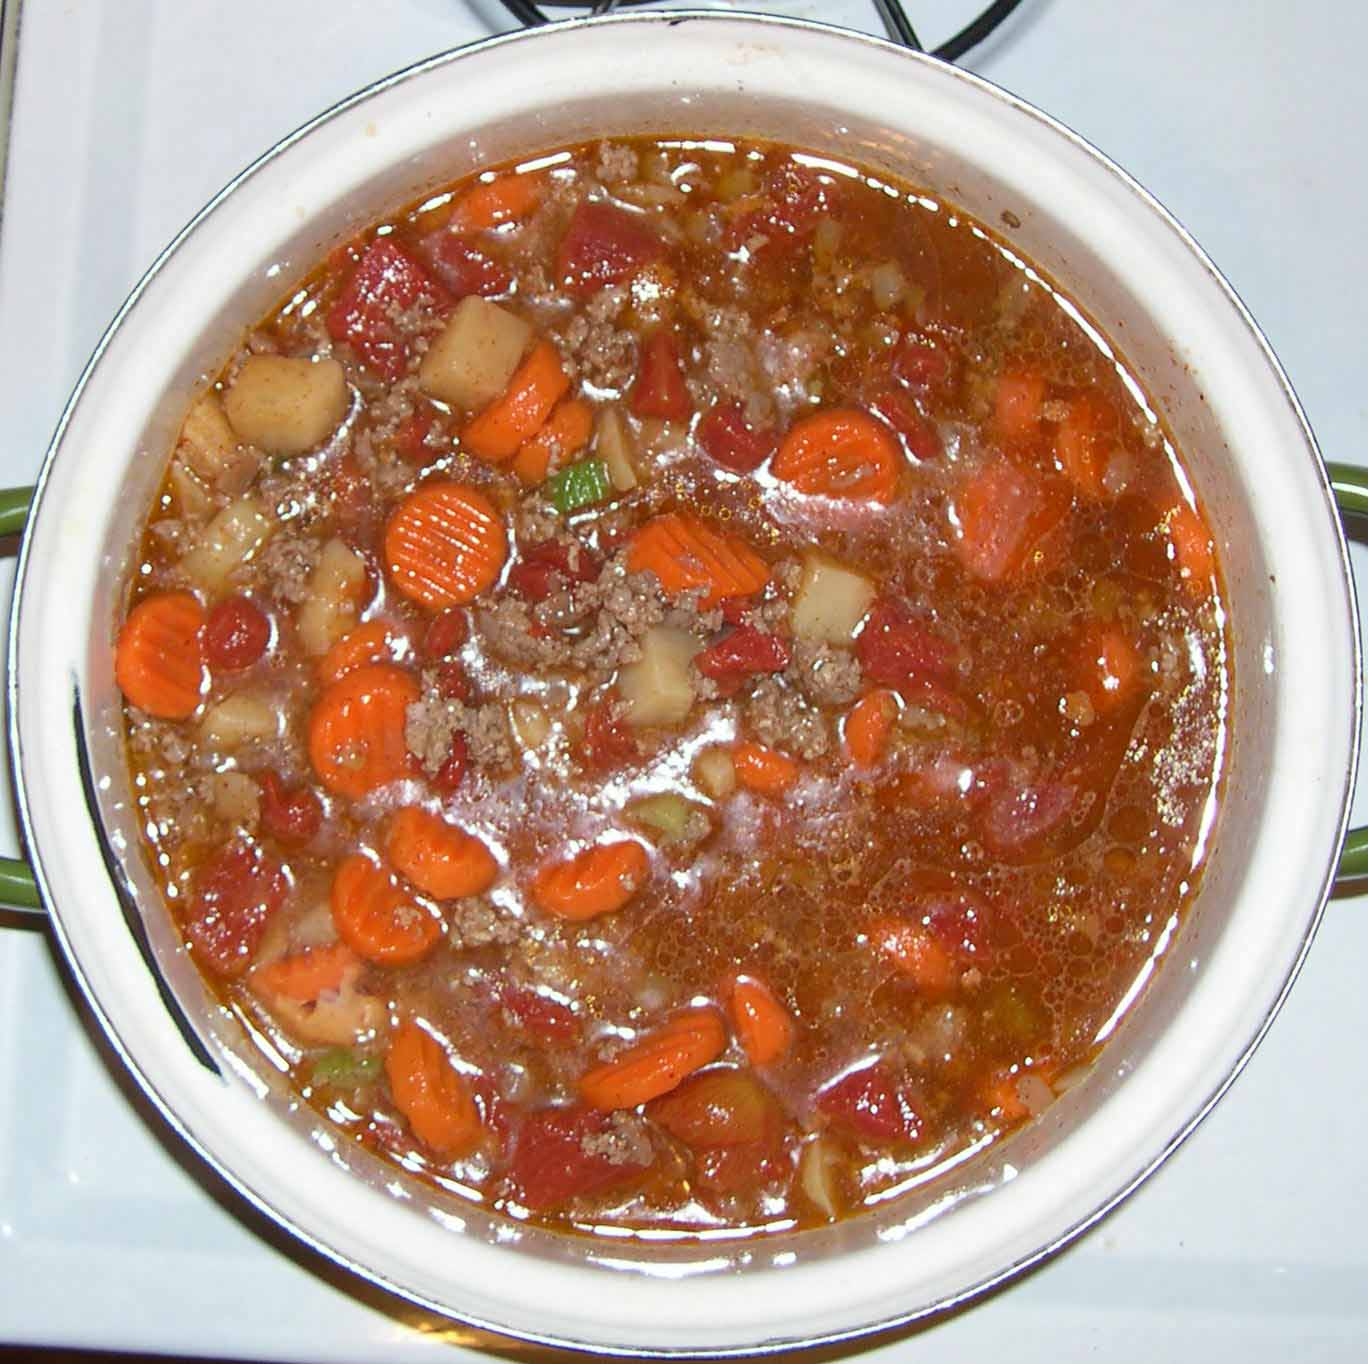 Food For Thought: Beefy Stew